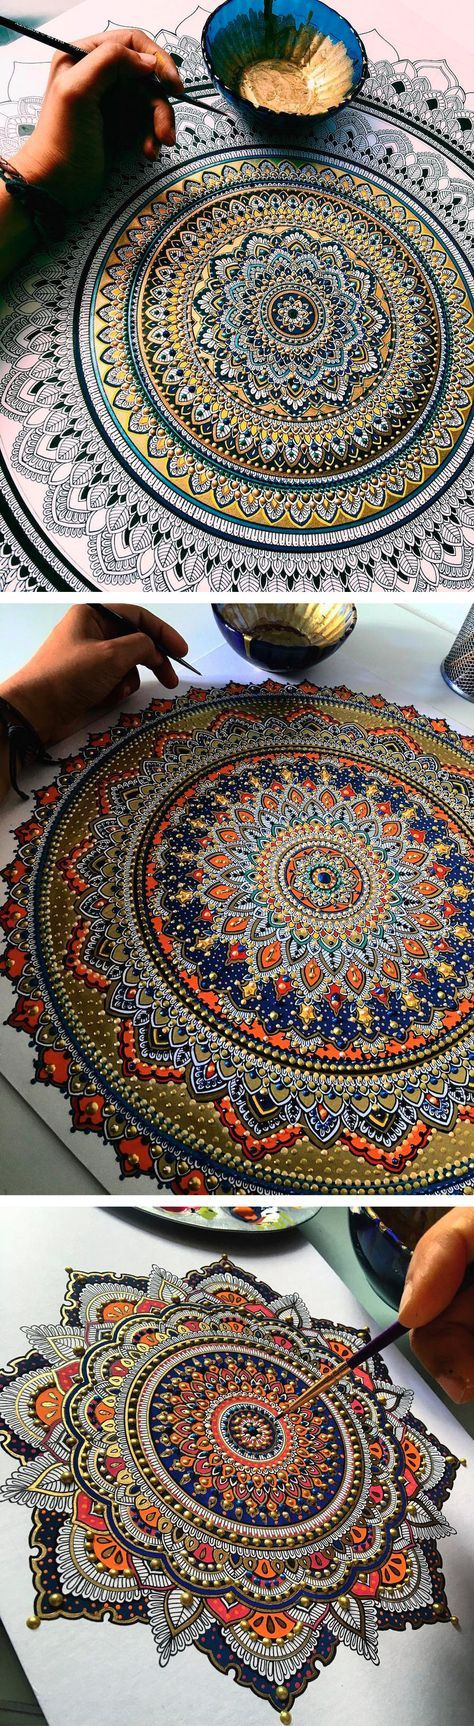 Intricate Mandalas Gilded with Gold Leaf by Artist Asmahan A. Mosleh…